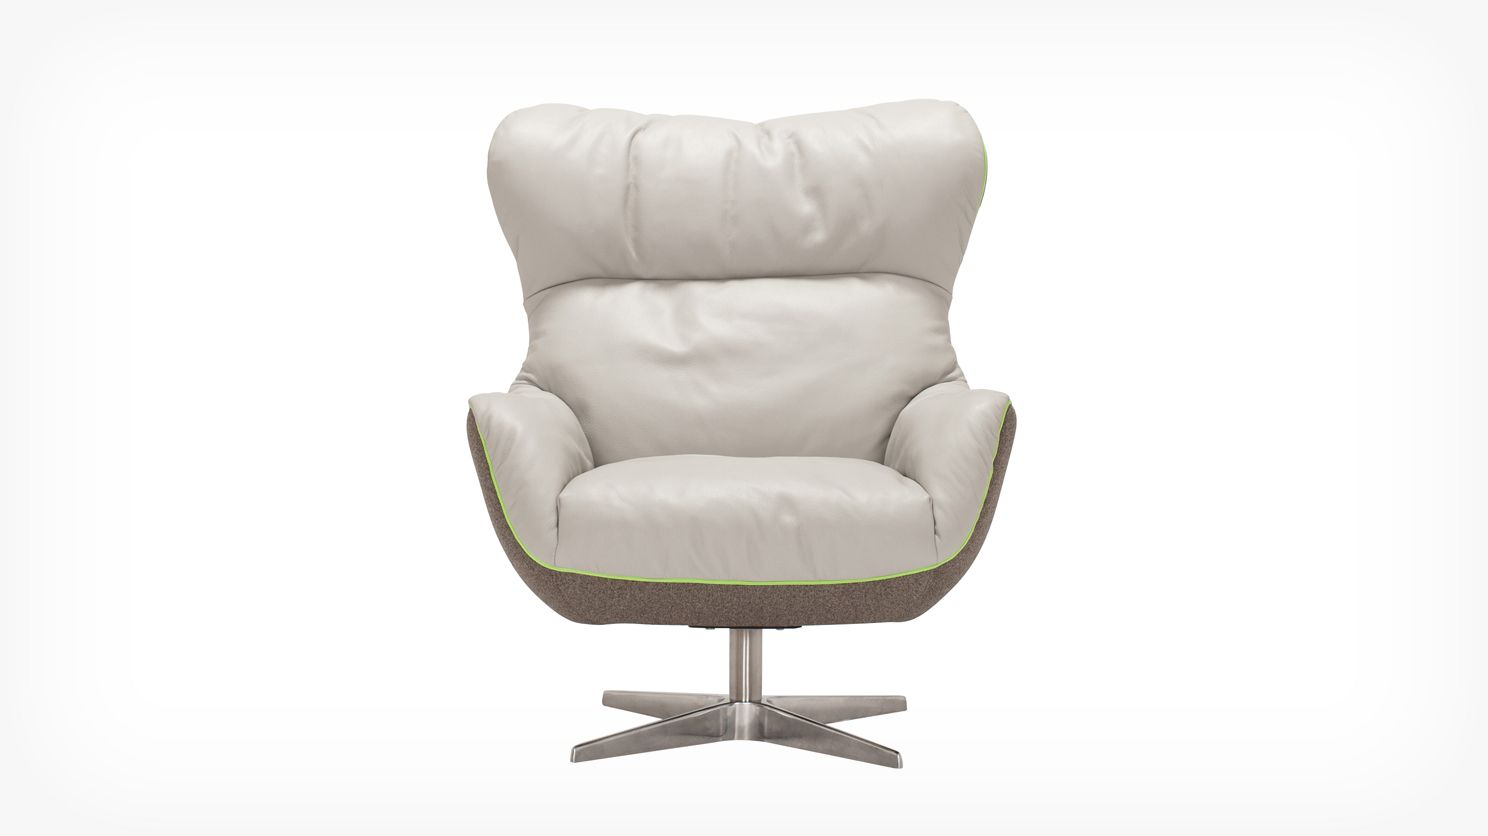 Genial Arie Chair Leather Fabric Front 01